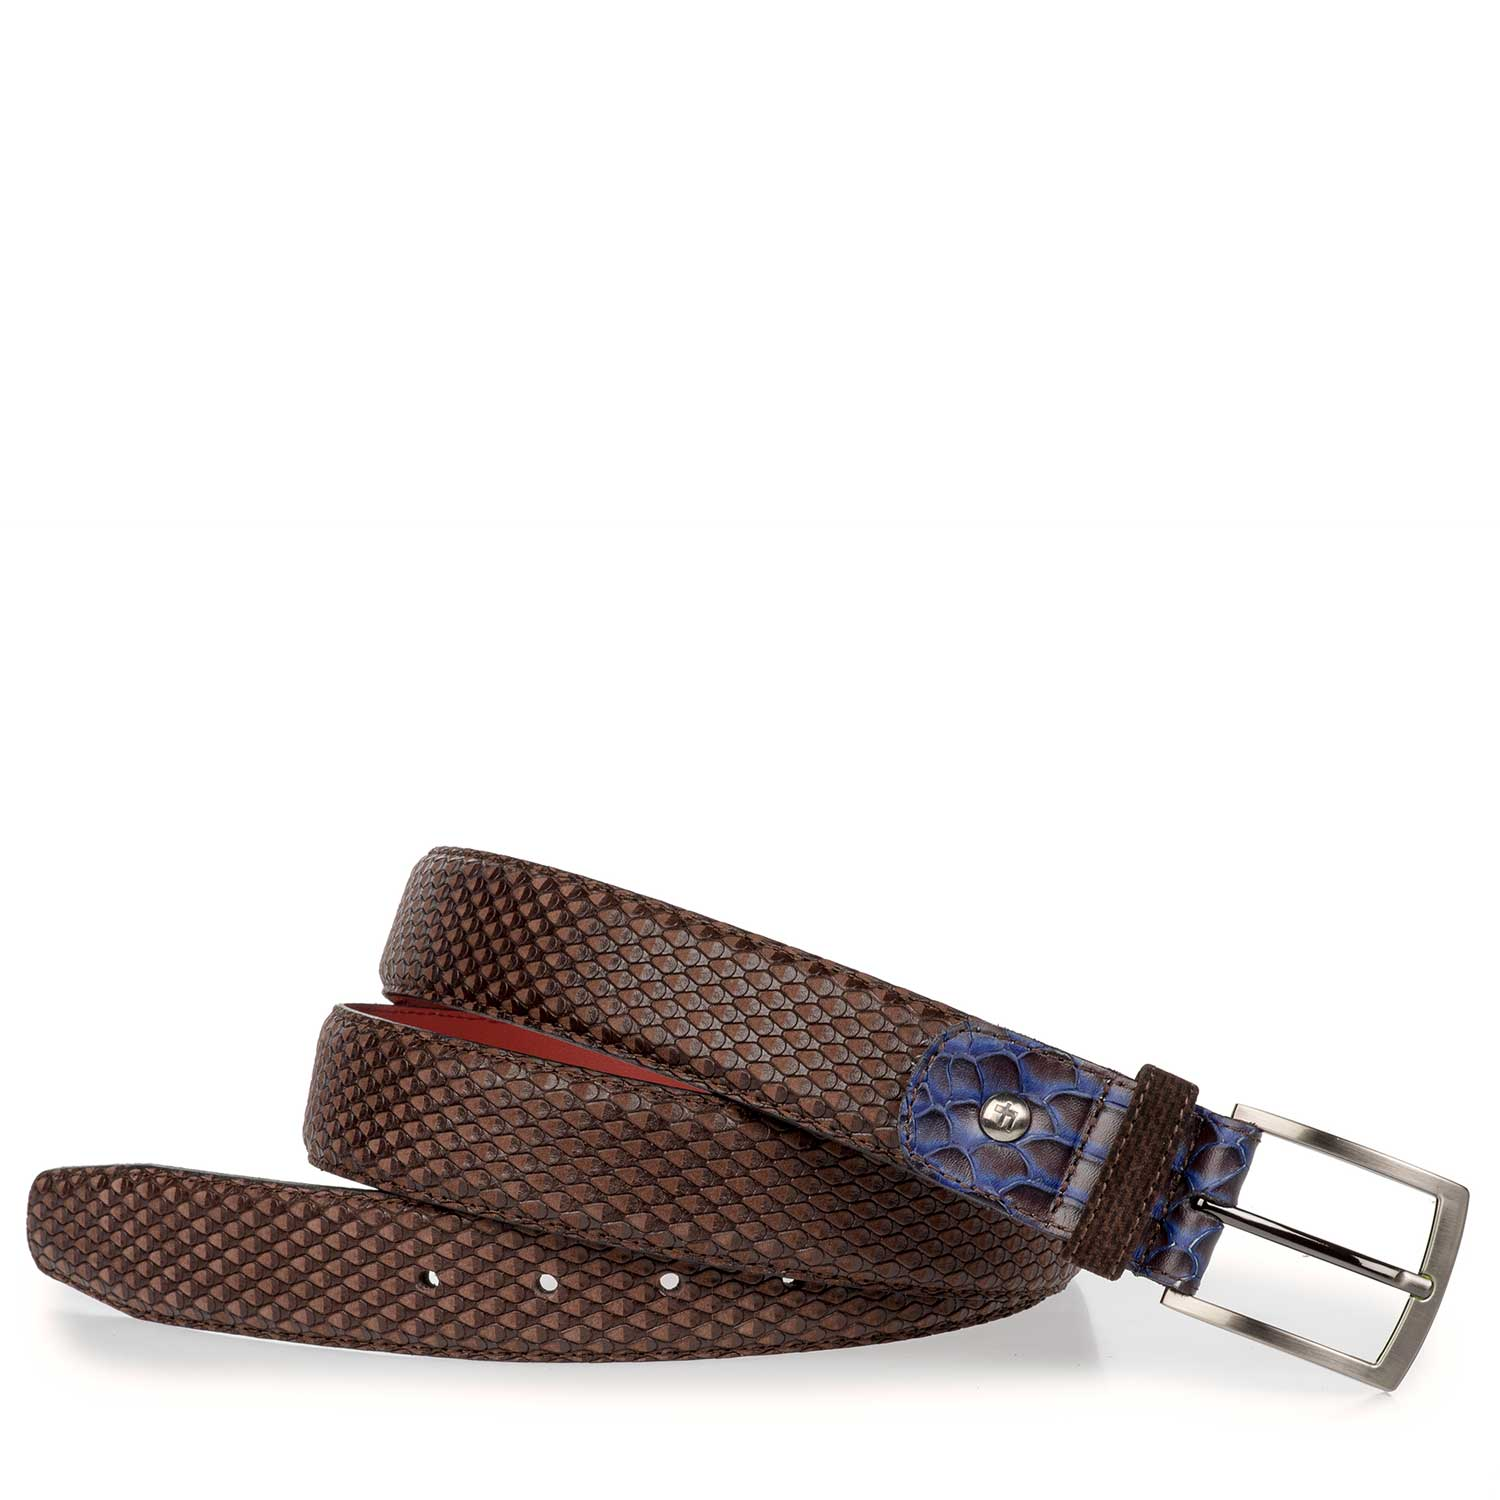 75188/16 - Brown nubuck leather belt with snake print